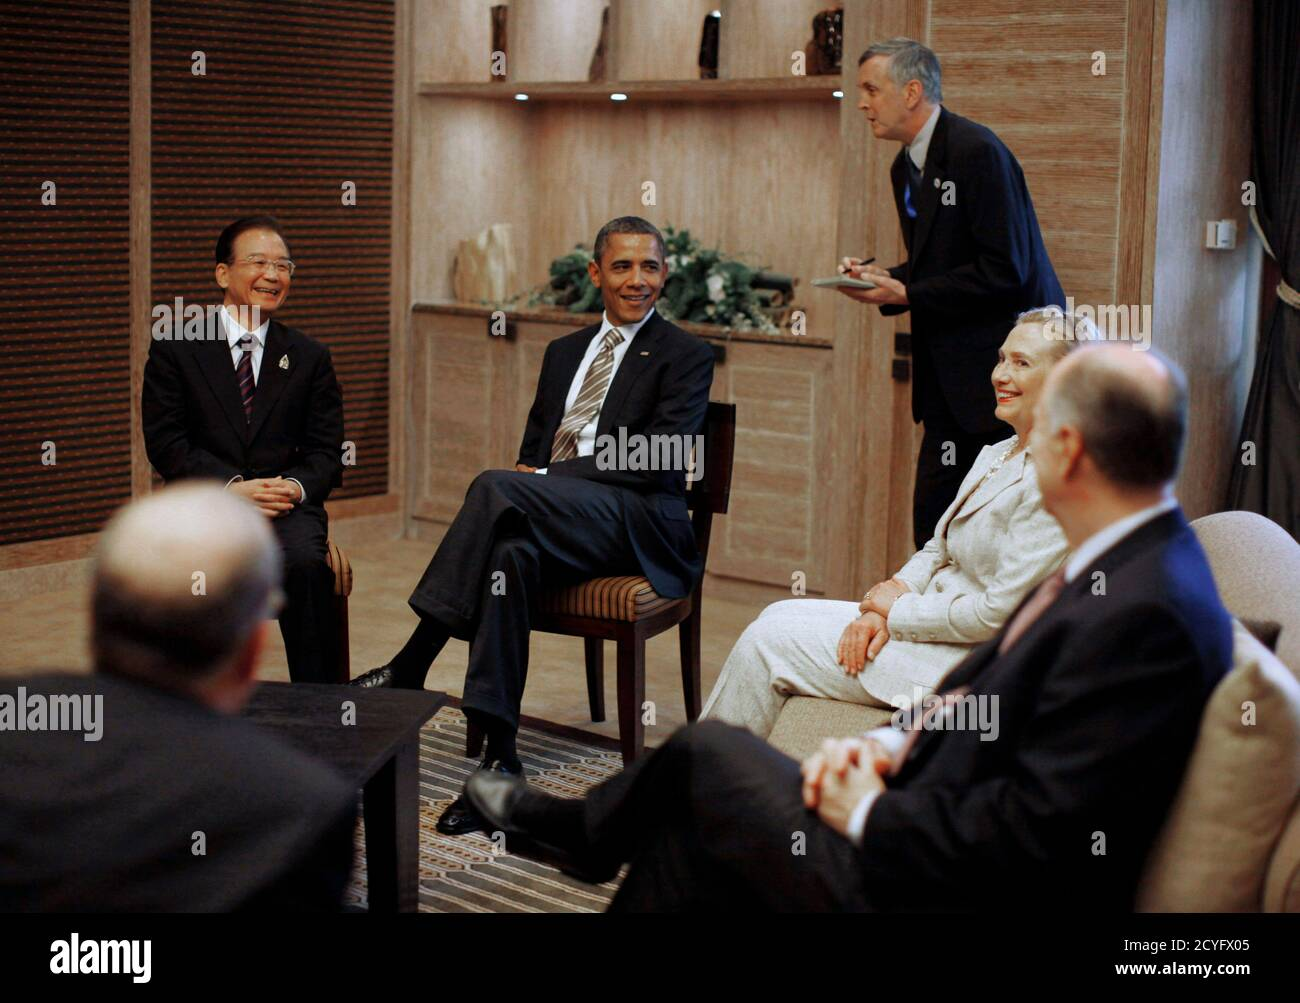 U.S. President Barack Obama (2nd L) and Secretary of State Hillary Clinton (2nd R) meet with China's Premier Wen Jiabao (L) on the sidelines of the East Asia Summit in Nusa Dua, Bali, November 19, 2011. U.S. National Security Advisor Thomas Donilon sits on the right.   REUTERS/Jason Reed   (INDONESIA - Tags: POLITICS) Foto de stock